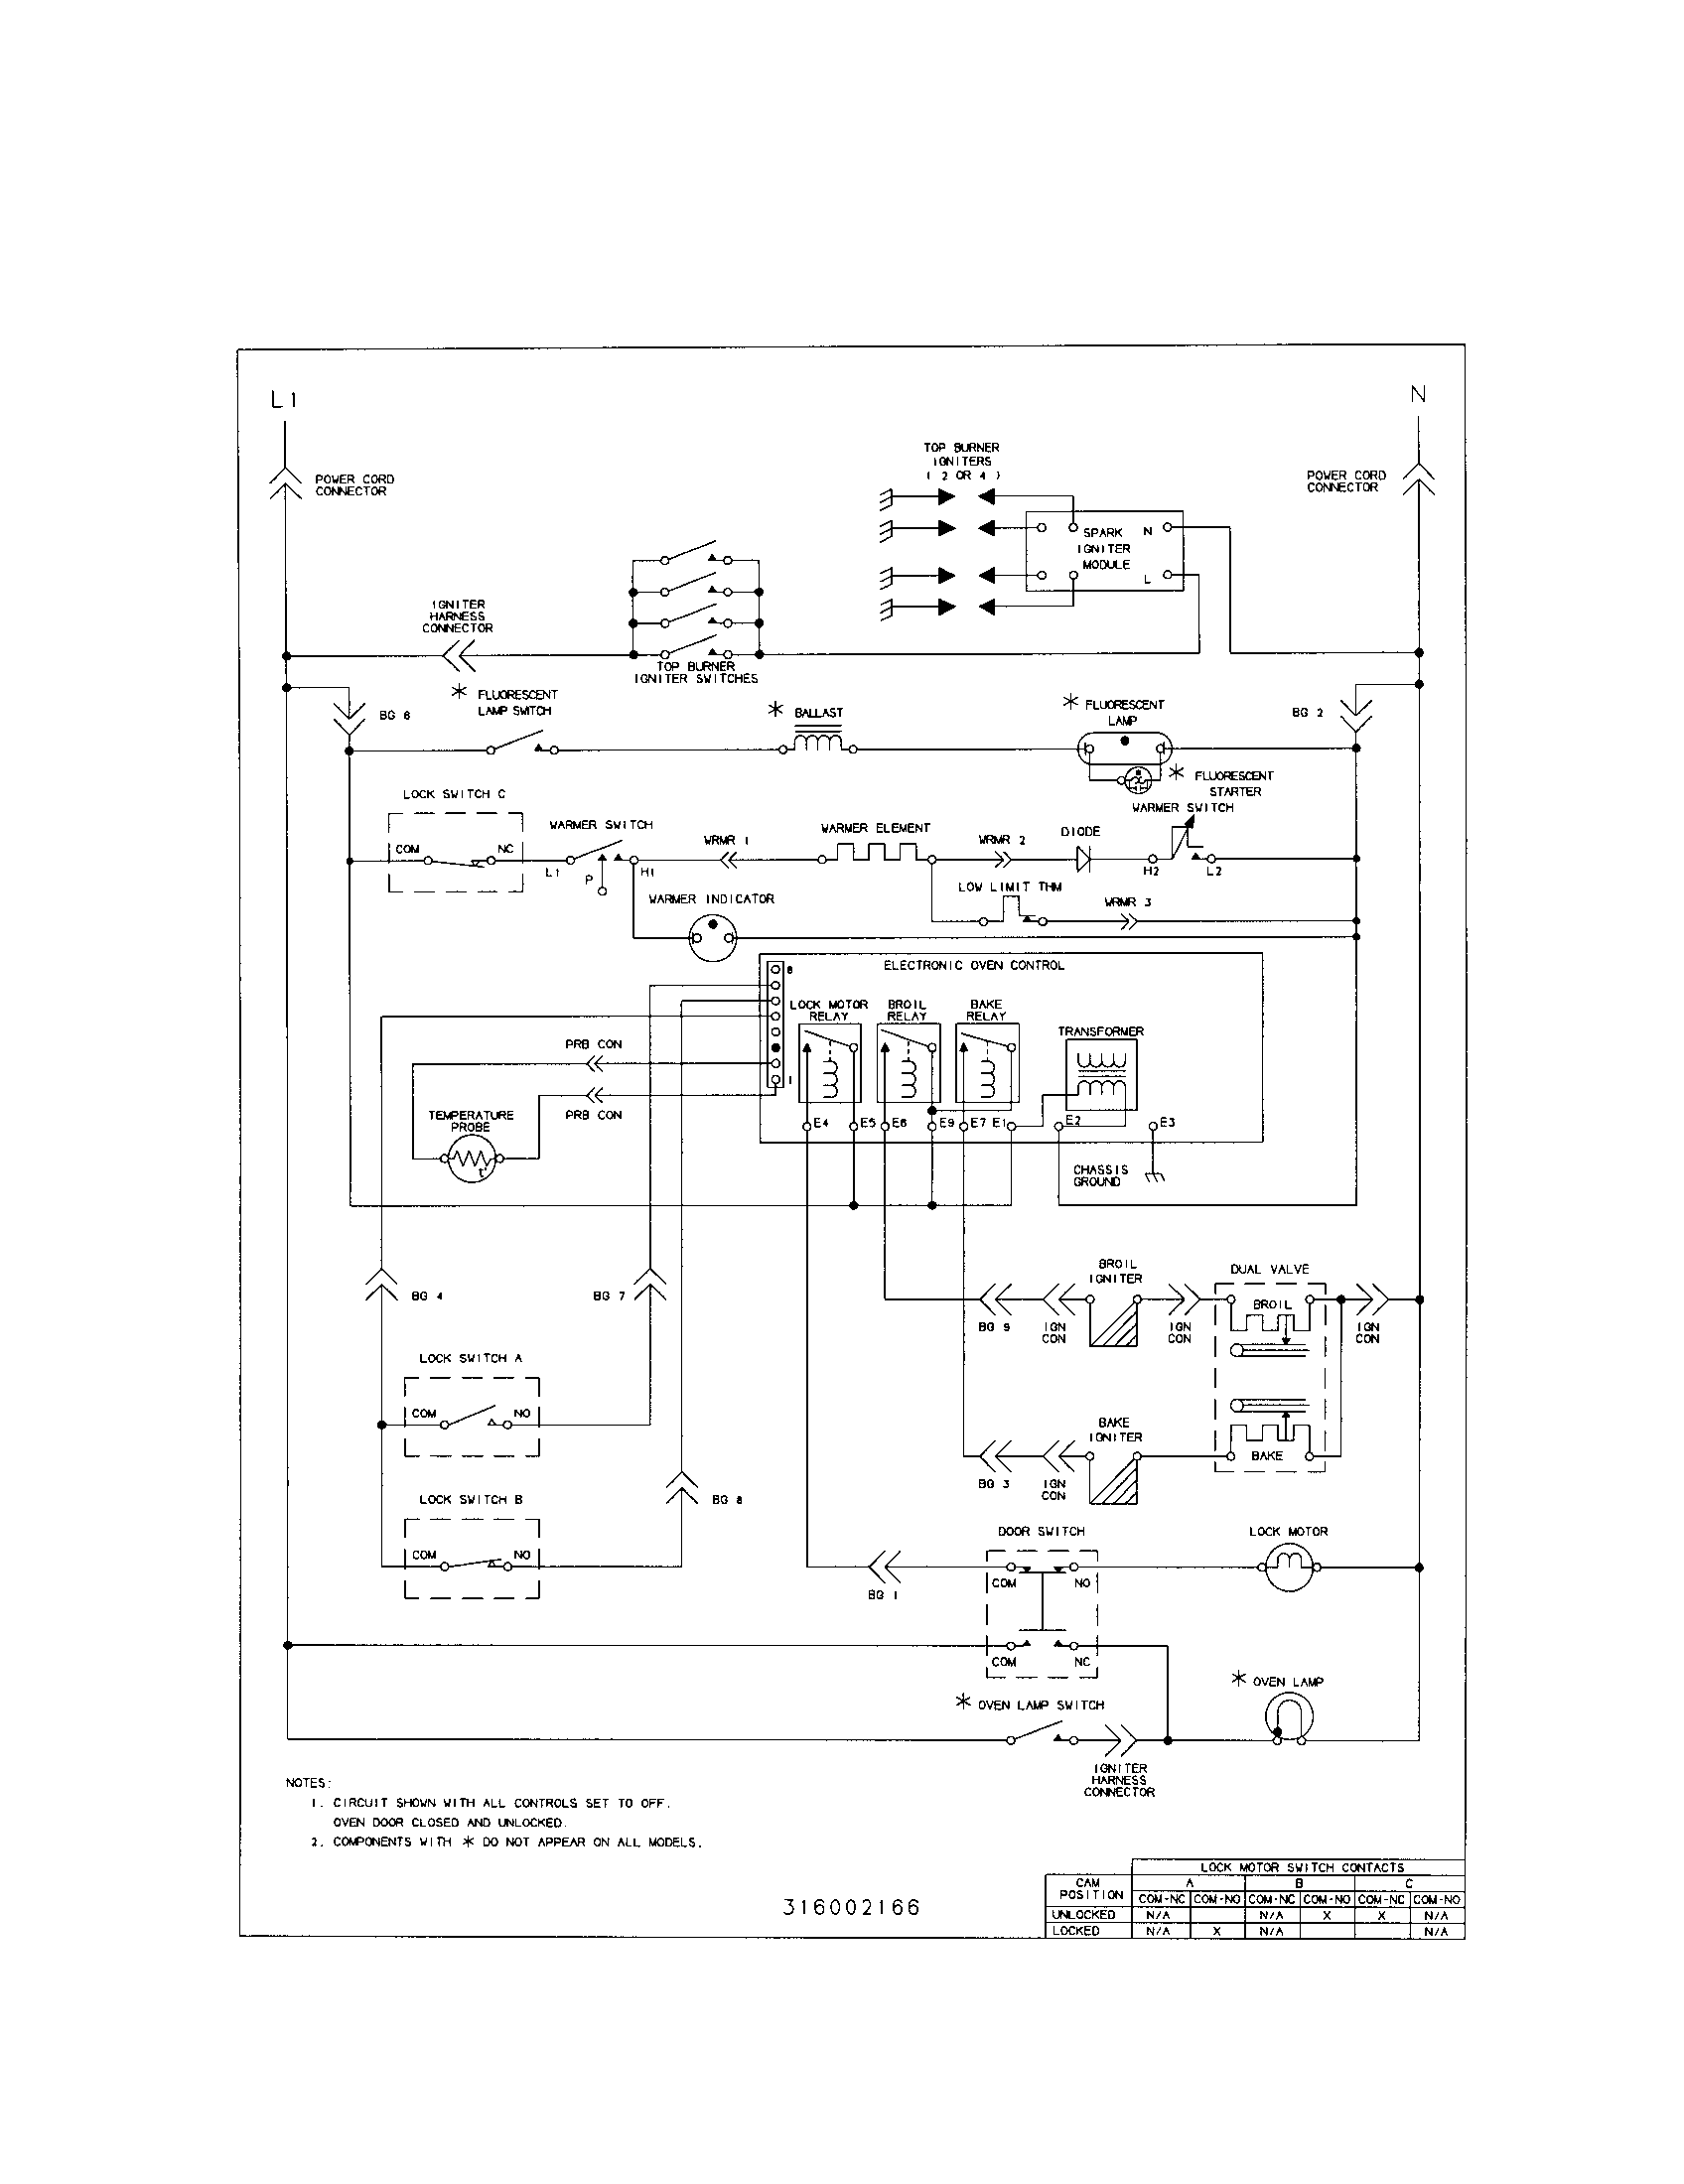 Frigidaire Range Wiring Diagram Smart Diagrams Oven Fgf379wecs Timer Stove Clocks And Top Electric